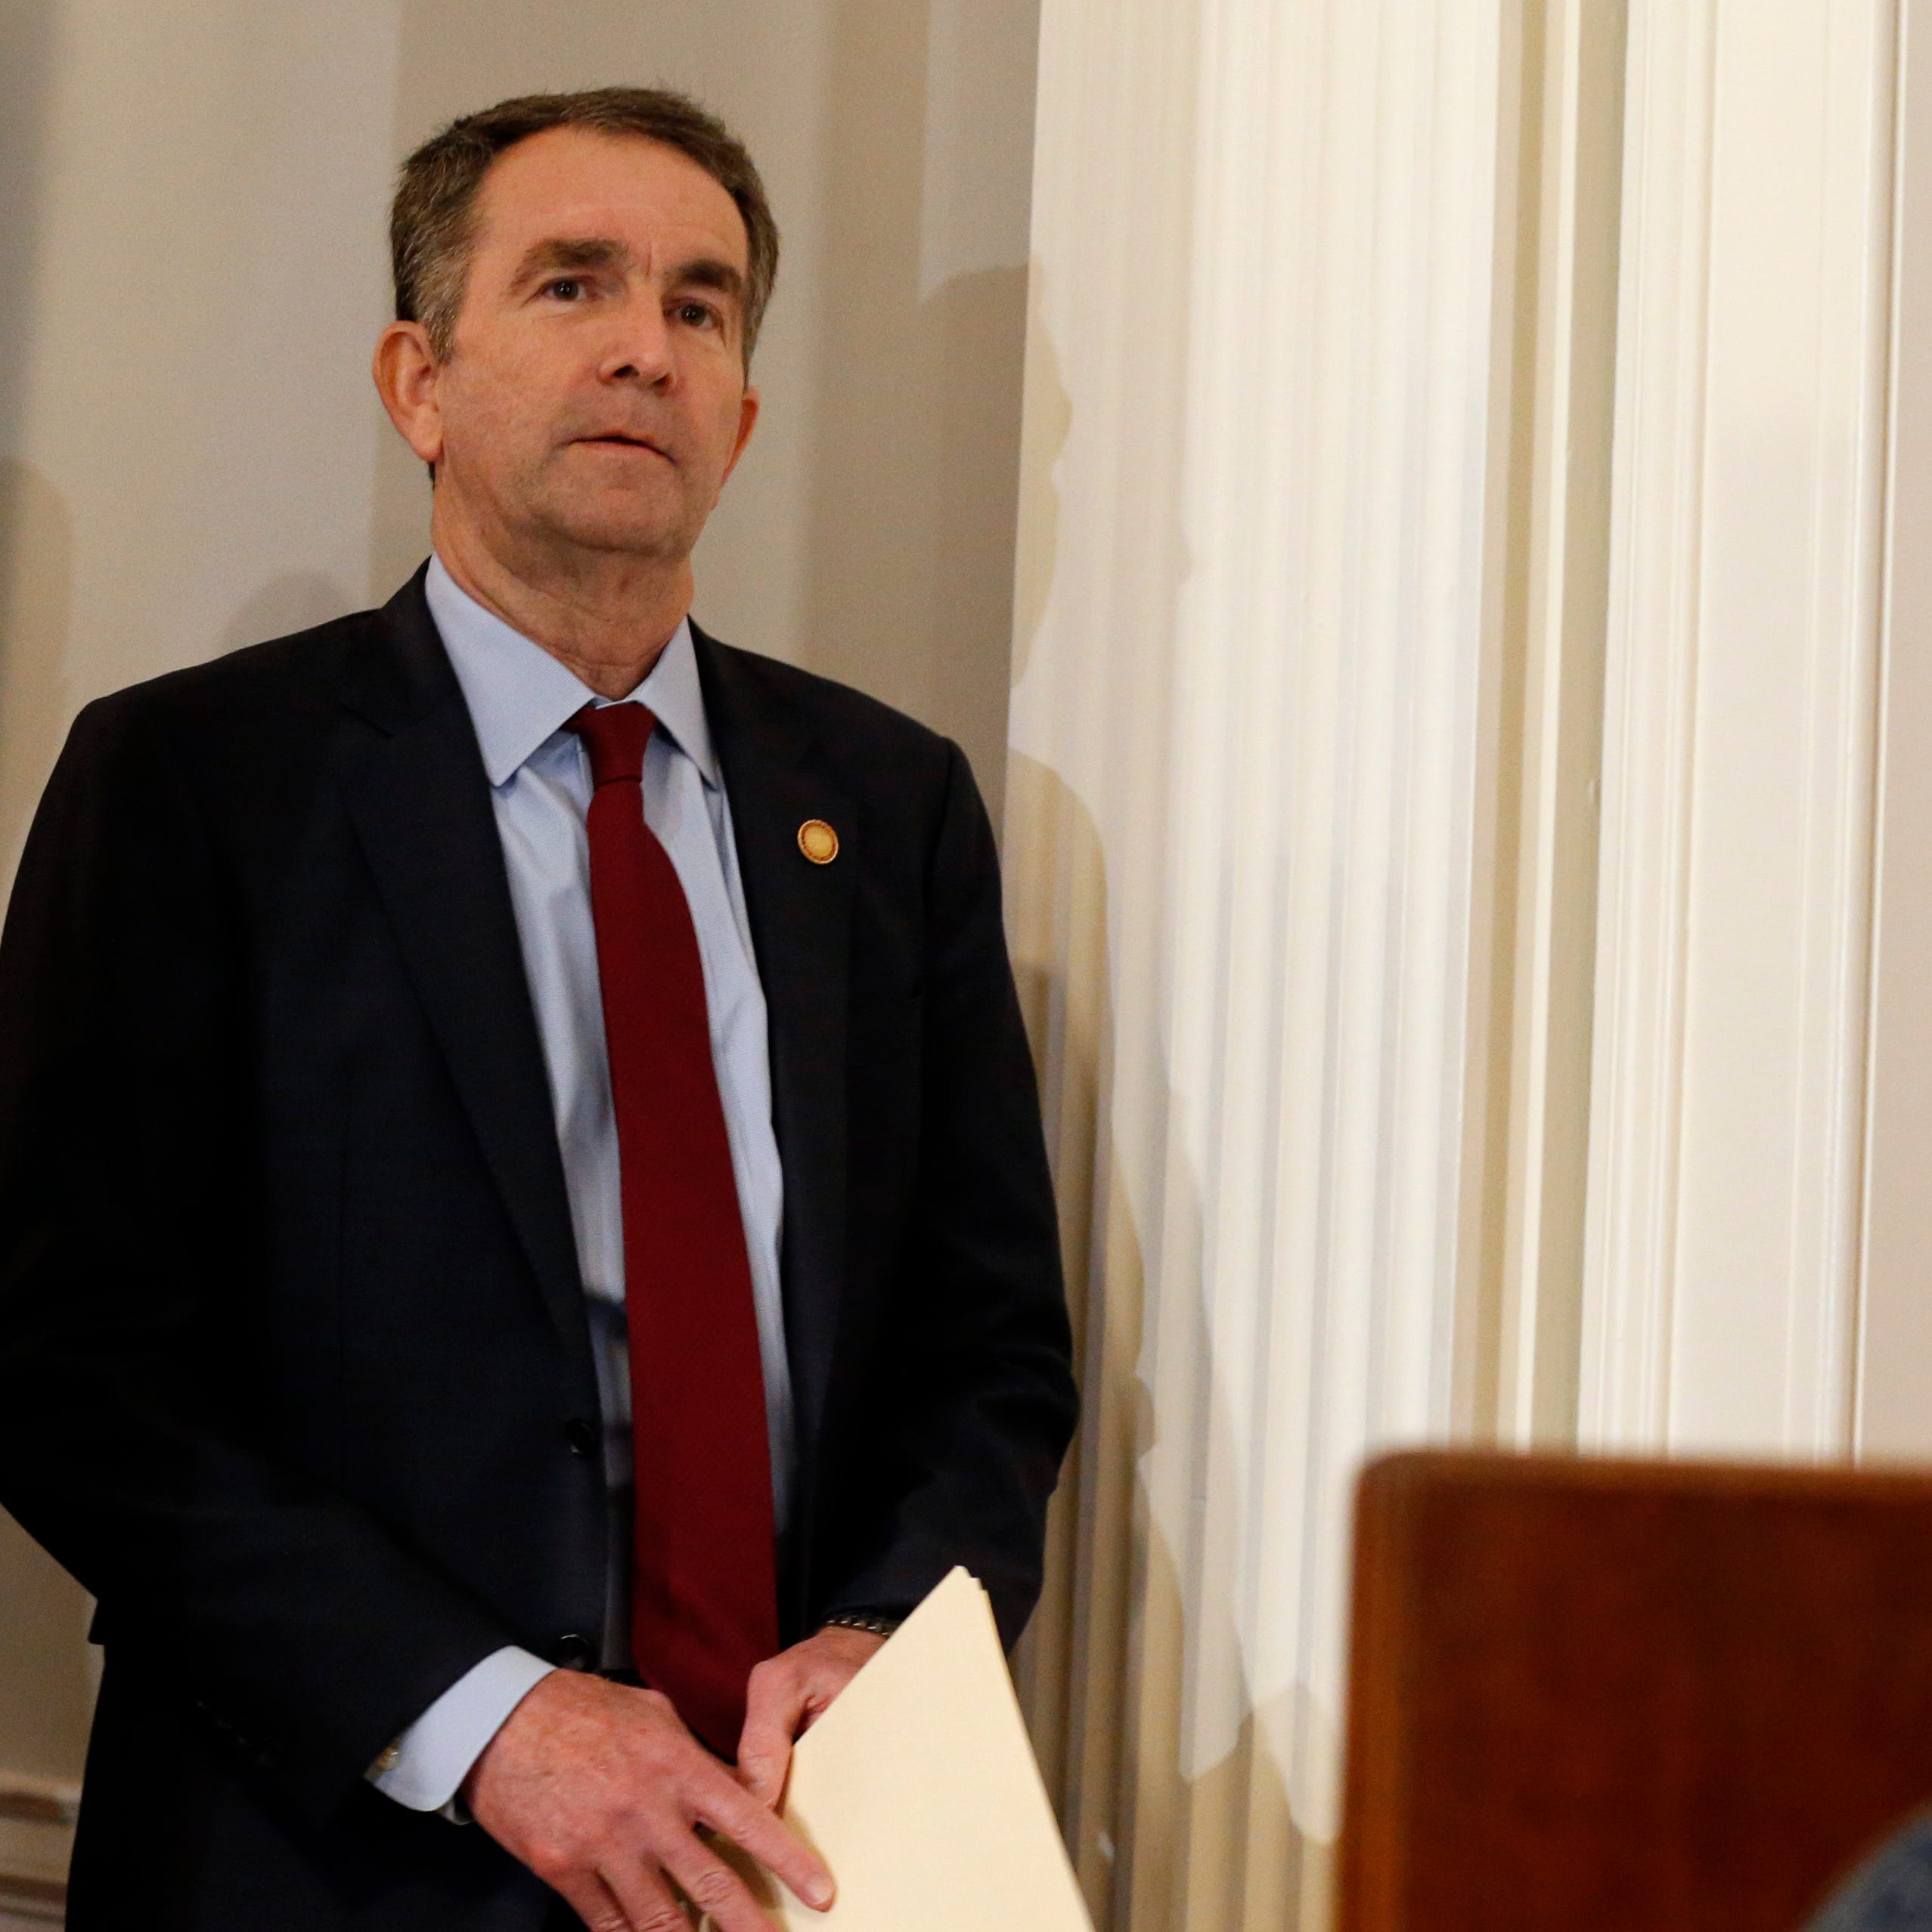 Northam yearbook debacle: Clever divide and conquer ploy, says reader